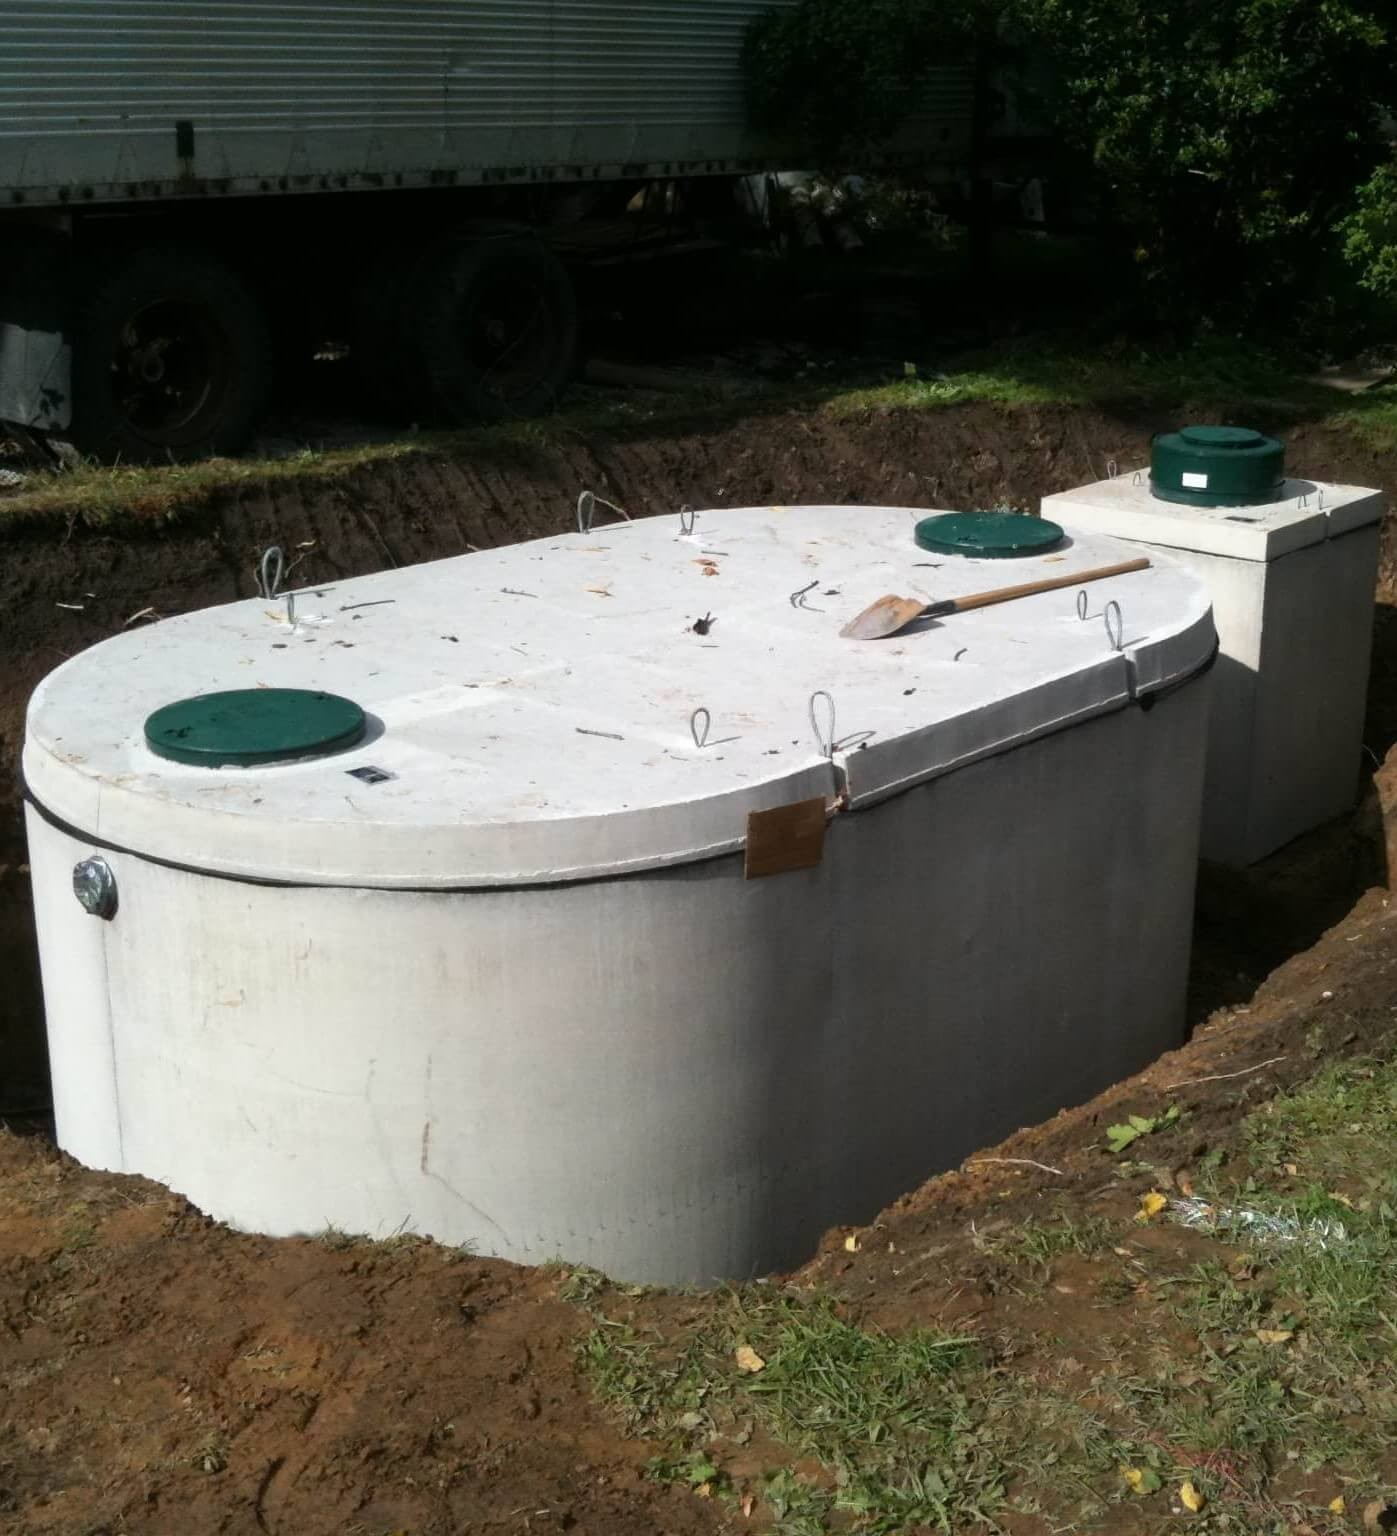 Plant Precast Concrete Septic Tank Construction : Septic tanks precast concrete